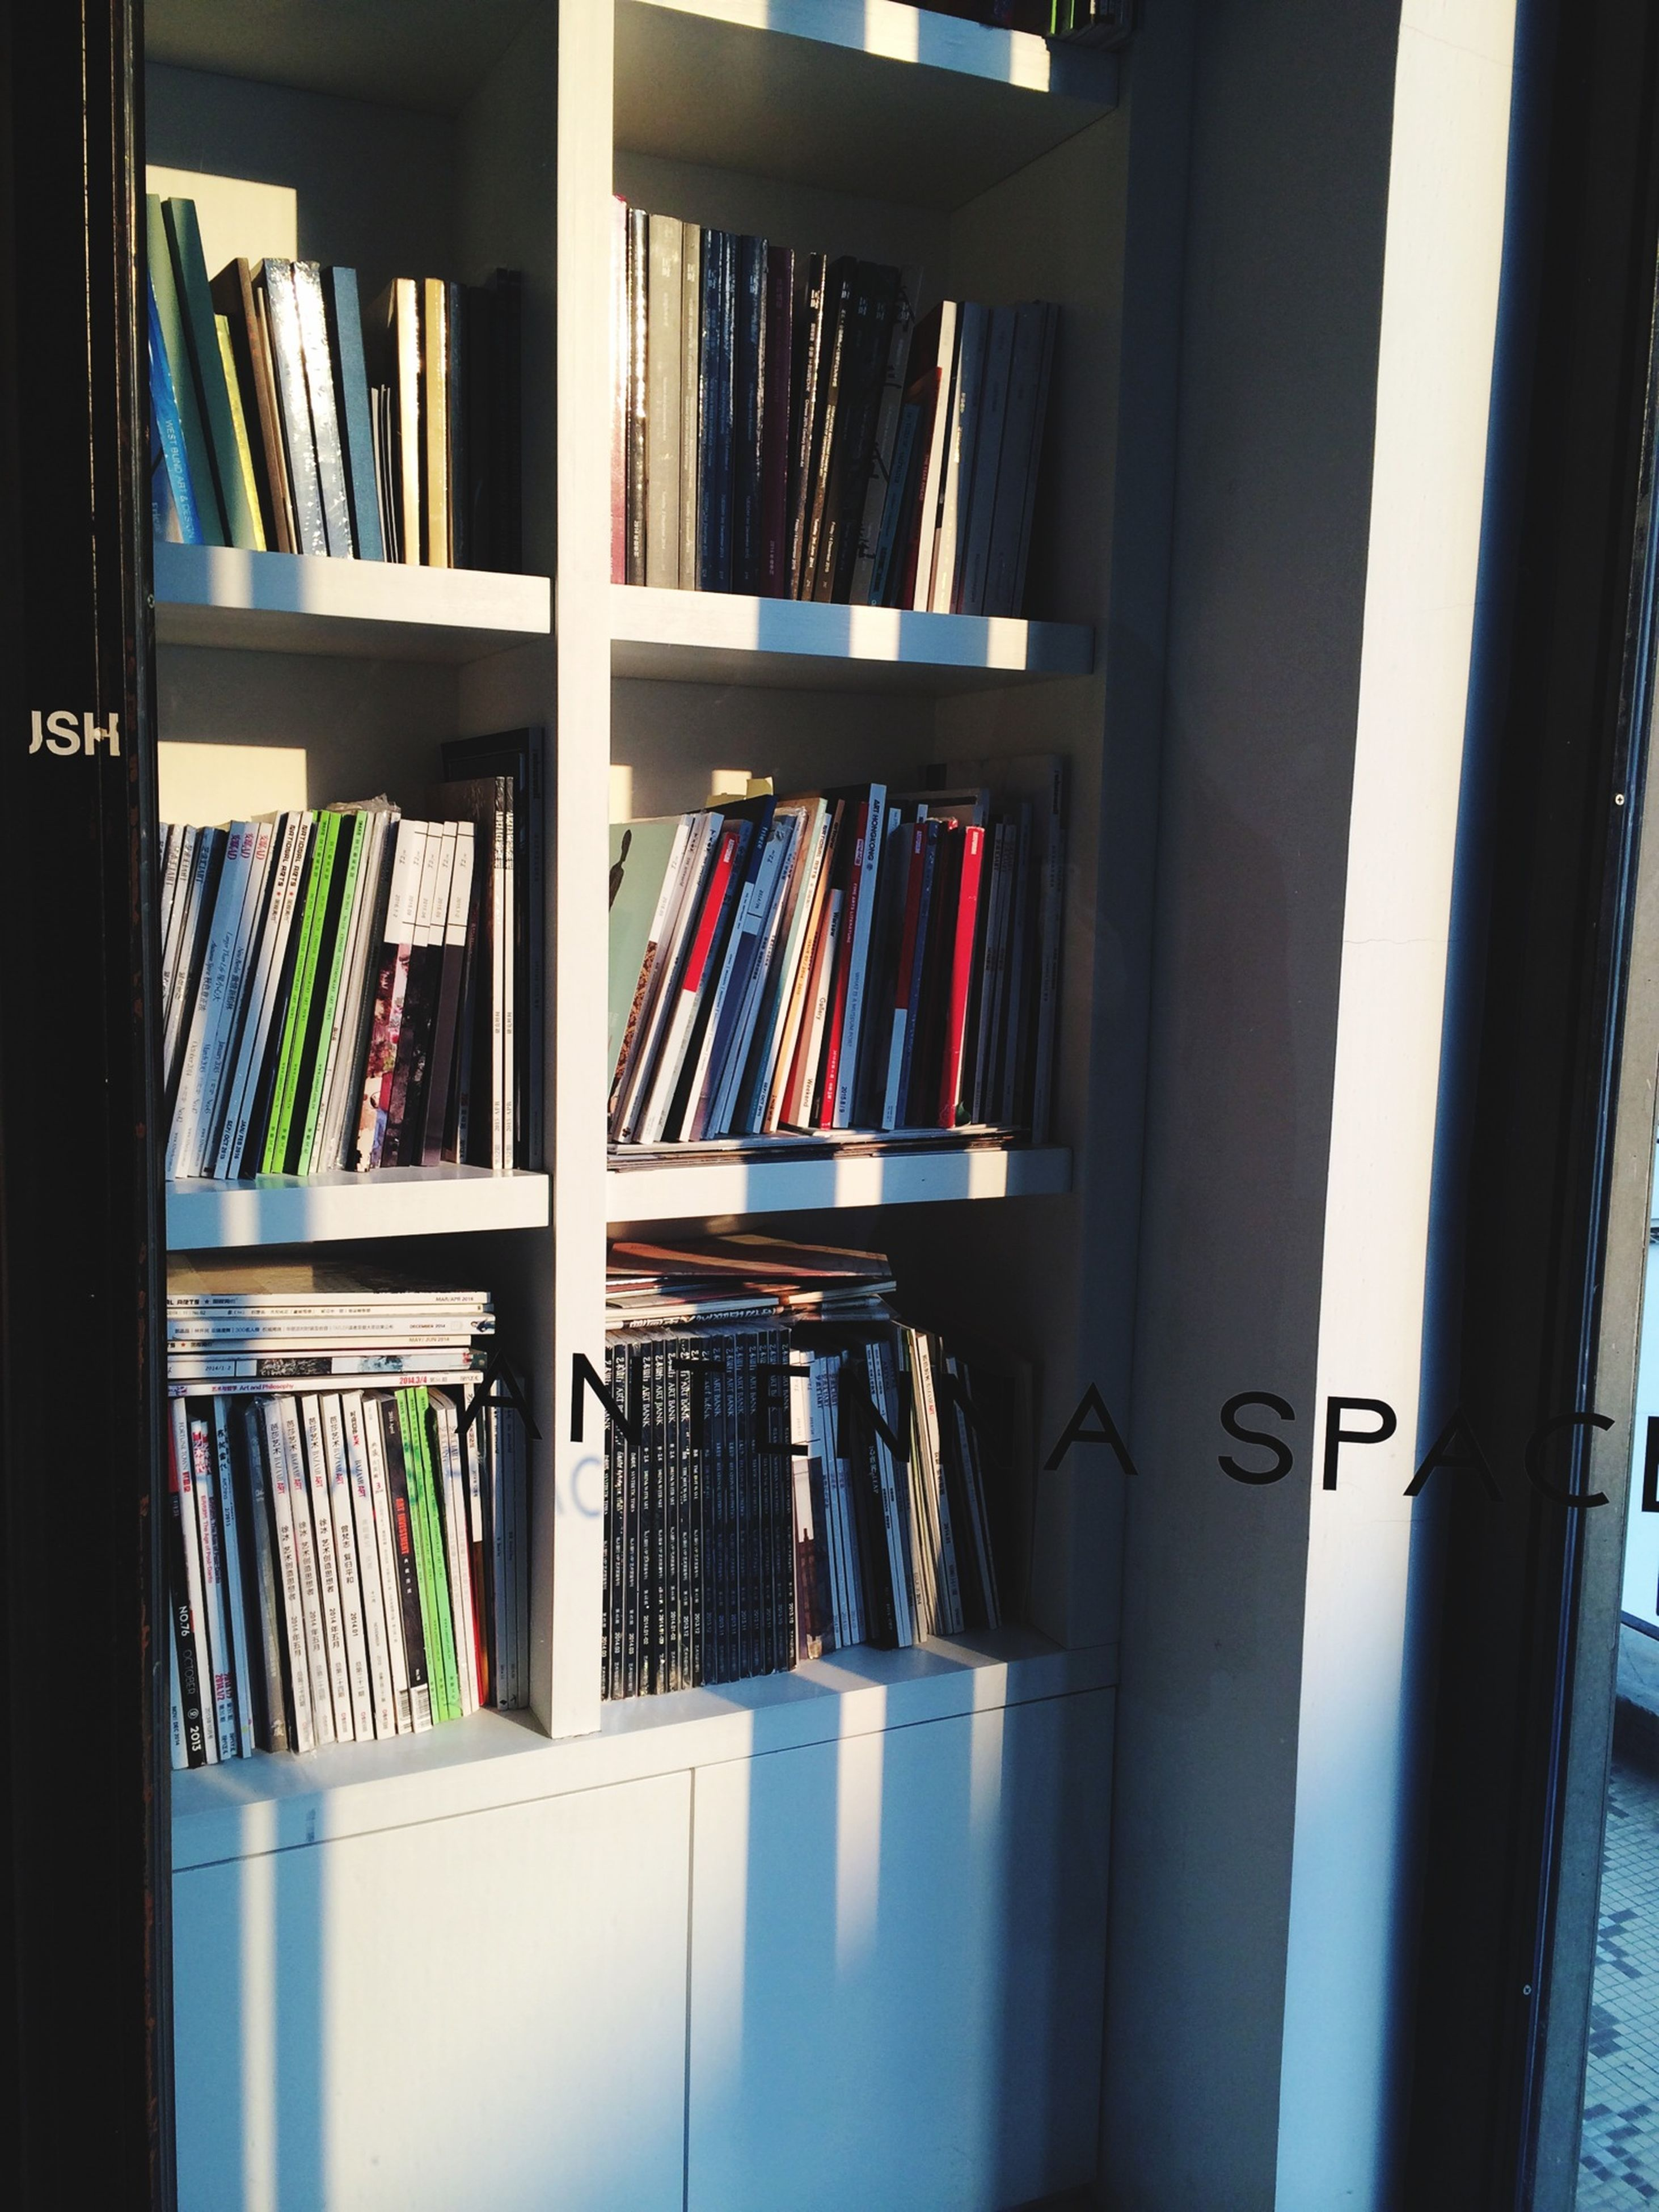 indoors, shelf, variation, bookshelf, book, large group of objects, arrangement, in a row, order, abundance, choice, education, multi colored, collection, window, library, home interior, still life, no people, desk